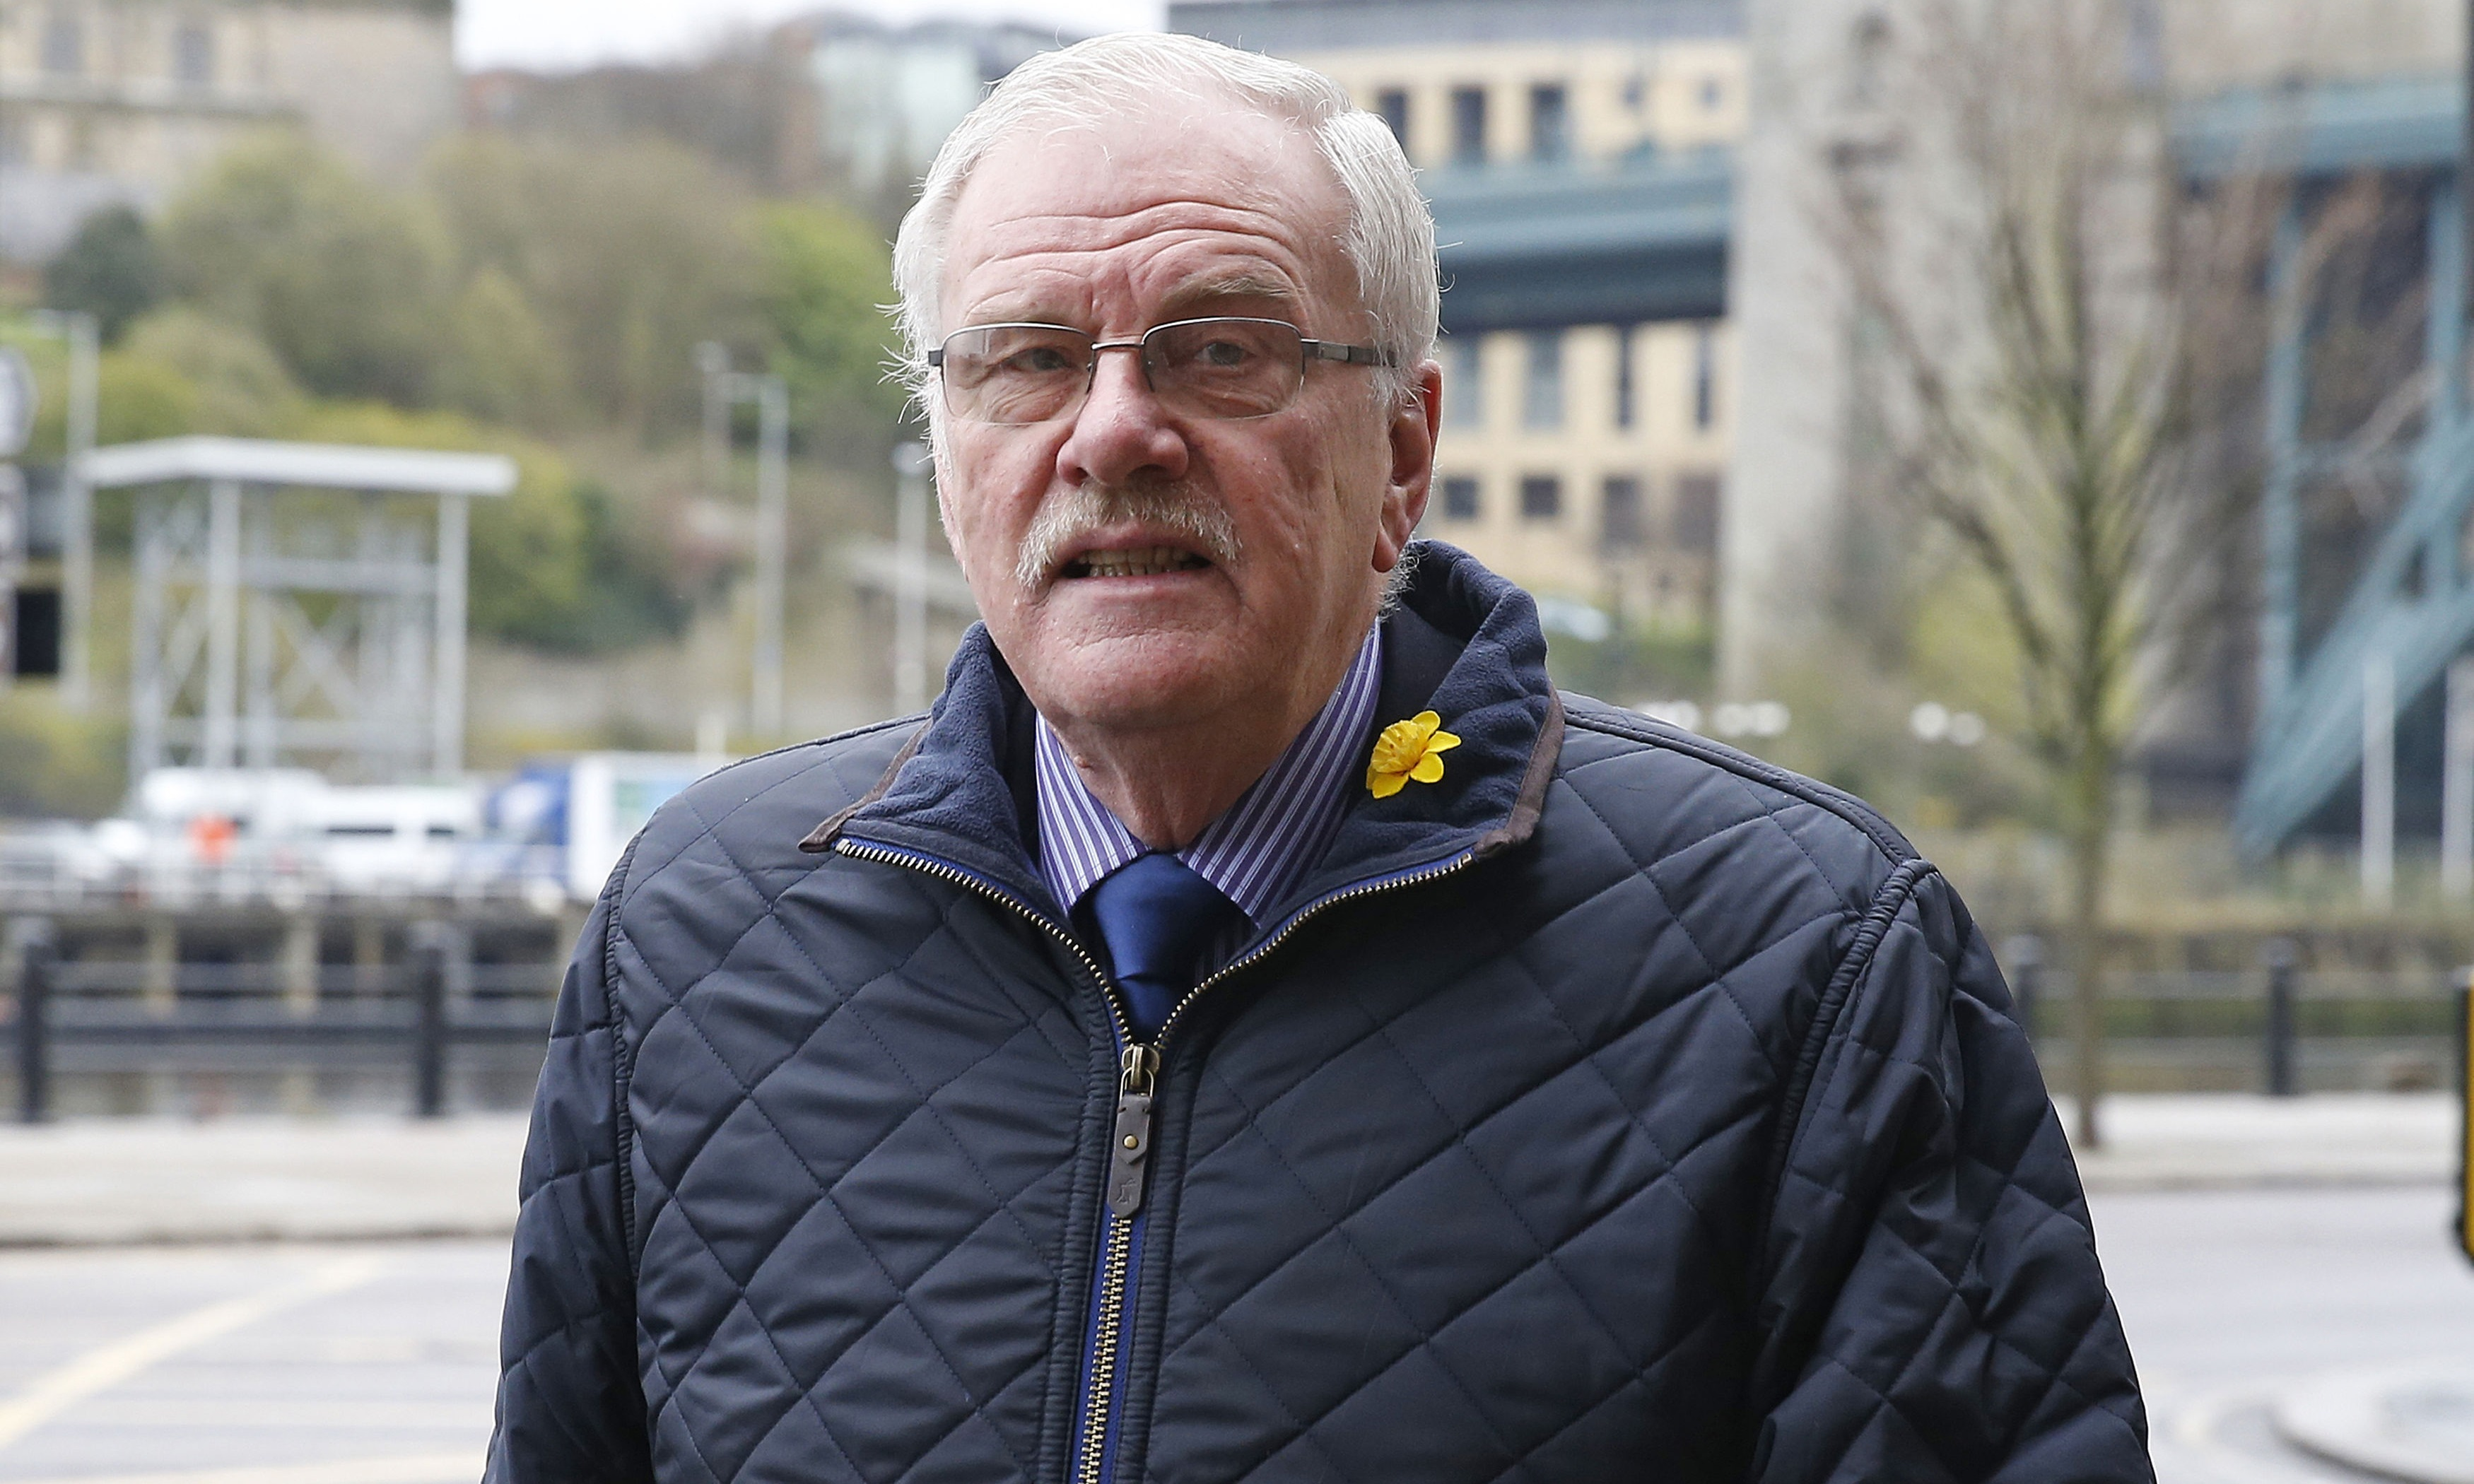 Colin Gregg who has been found guilty of nine counts of indecently assaulting boys.